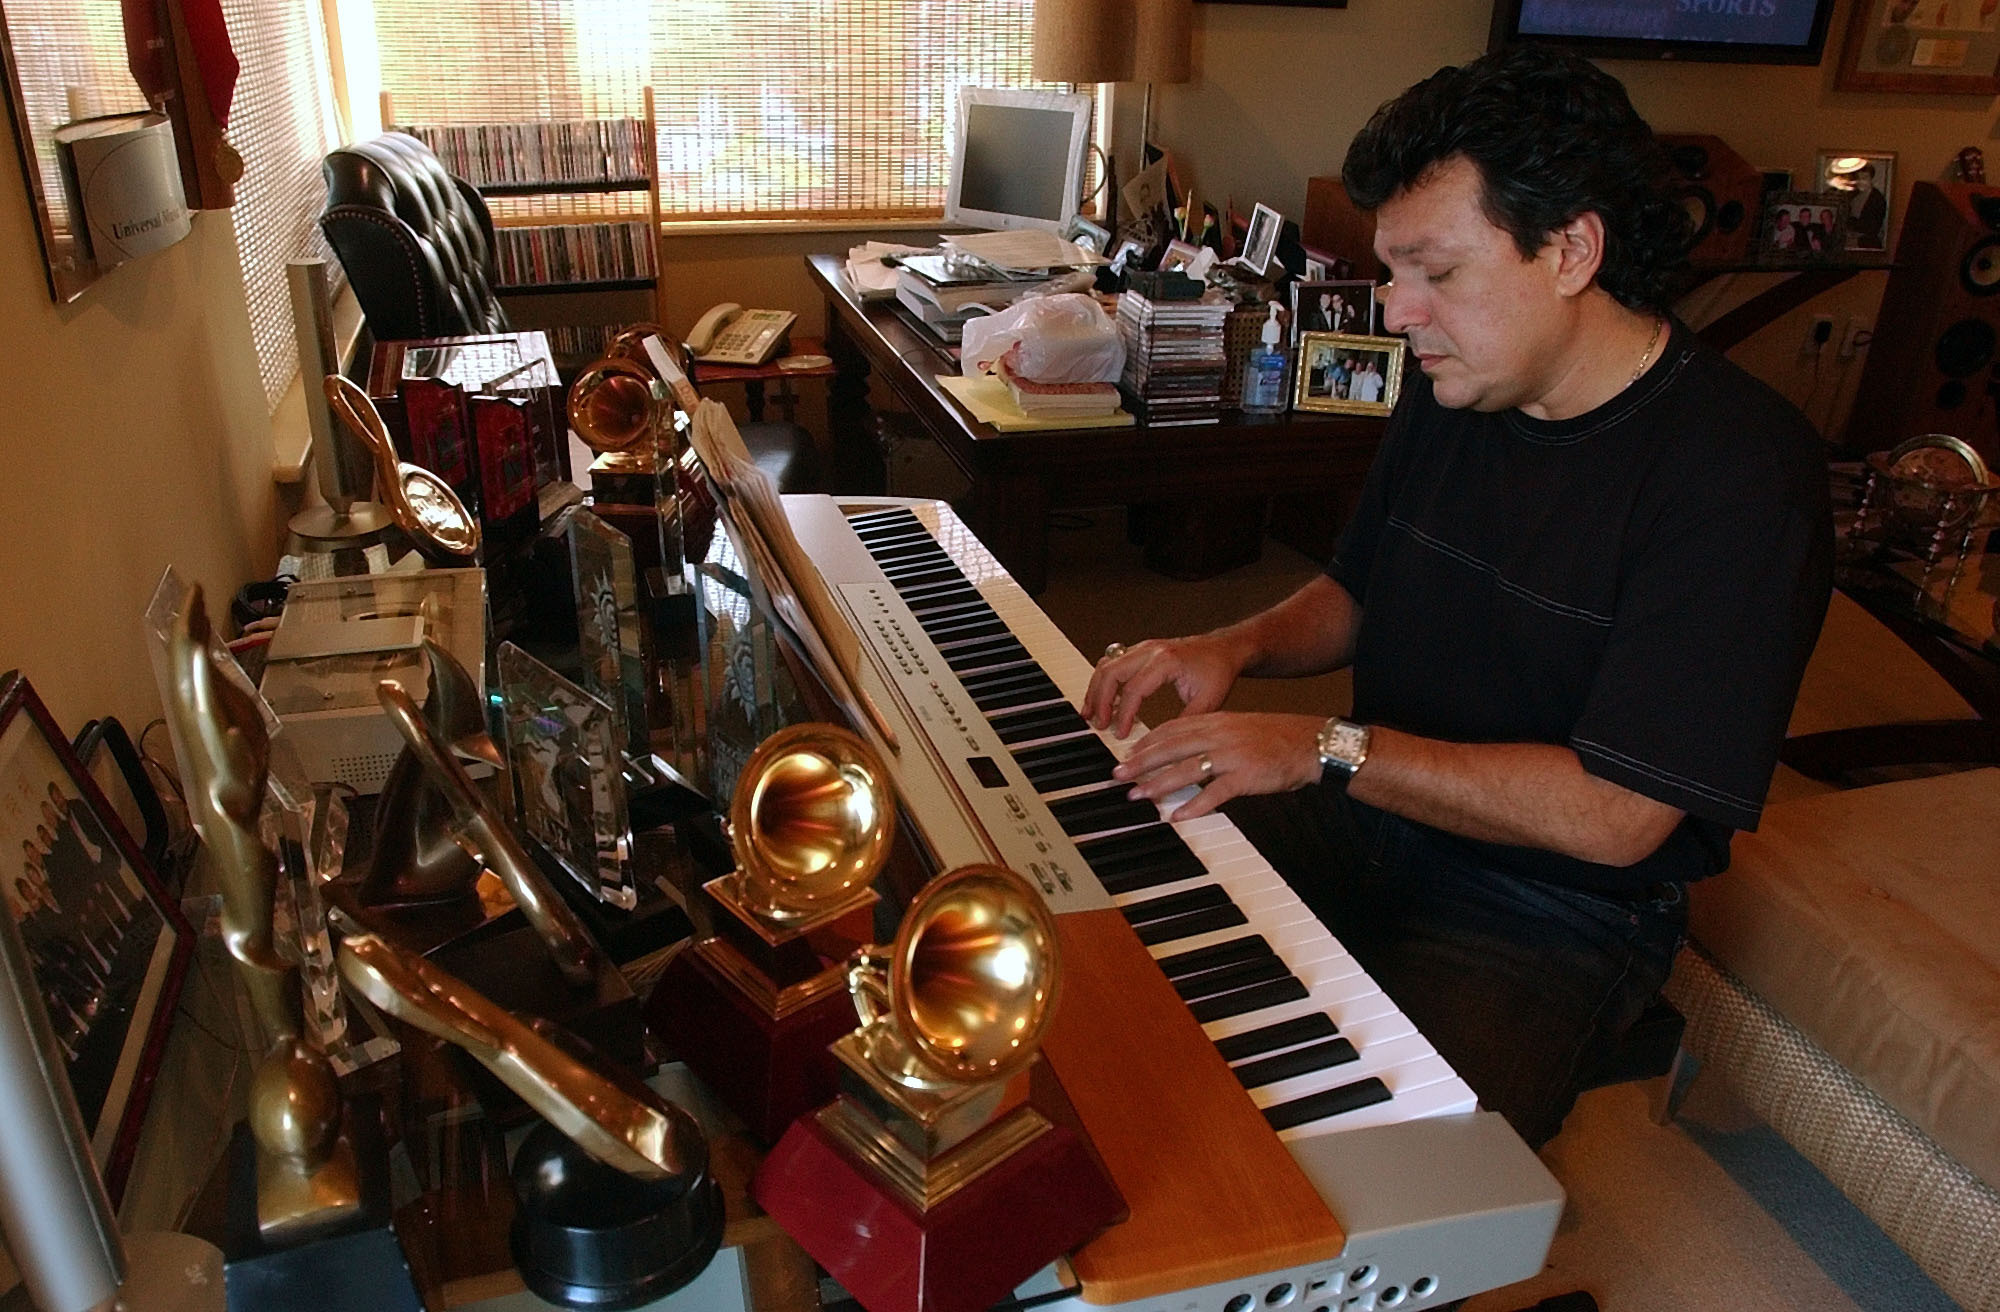 Rudy Pérez shares his journey from poverty to the Grammys